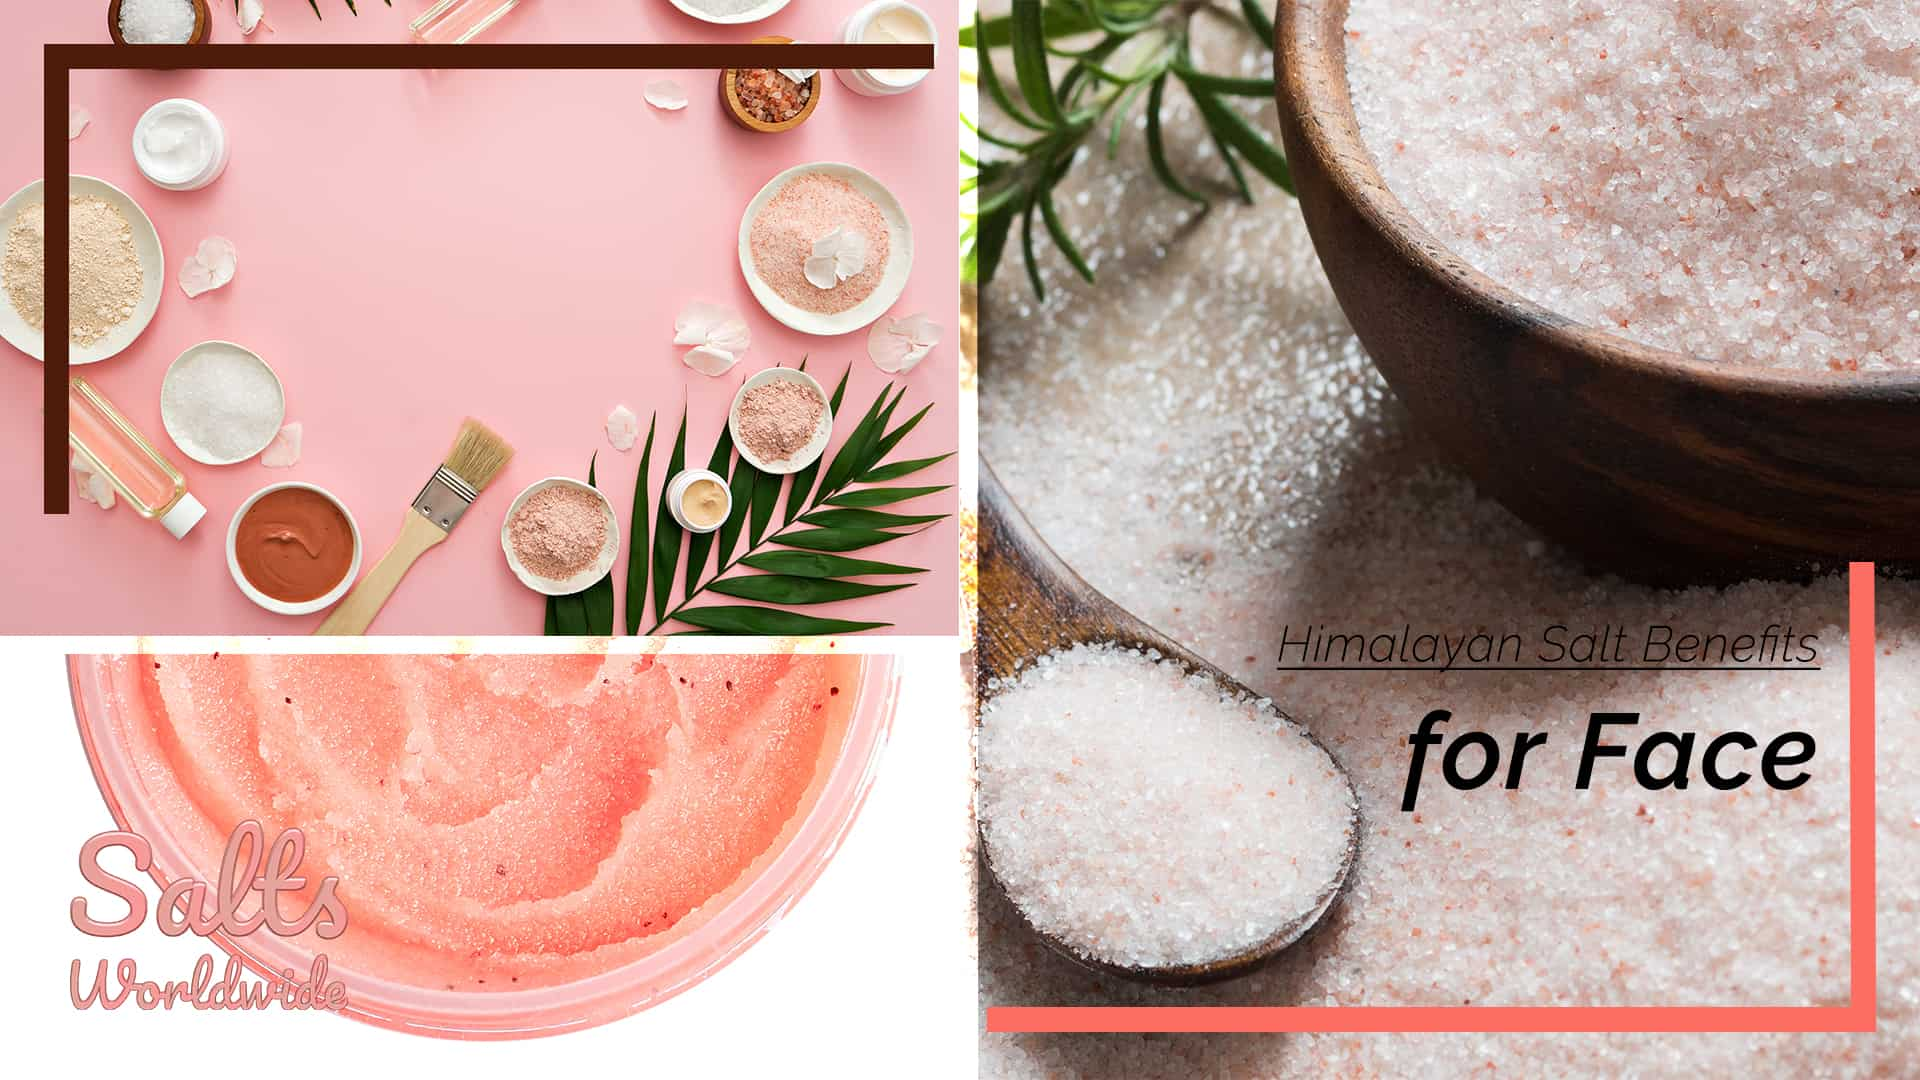 Himalayan Salt Benefits for Face - featured image